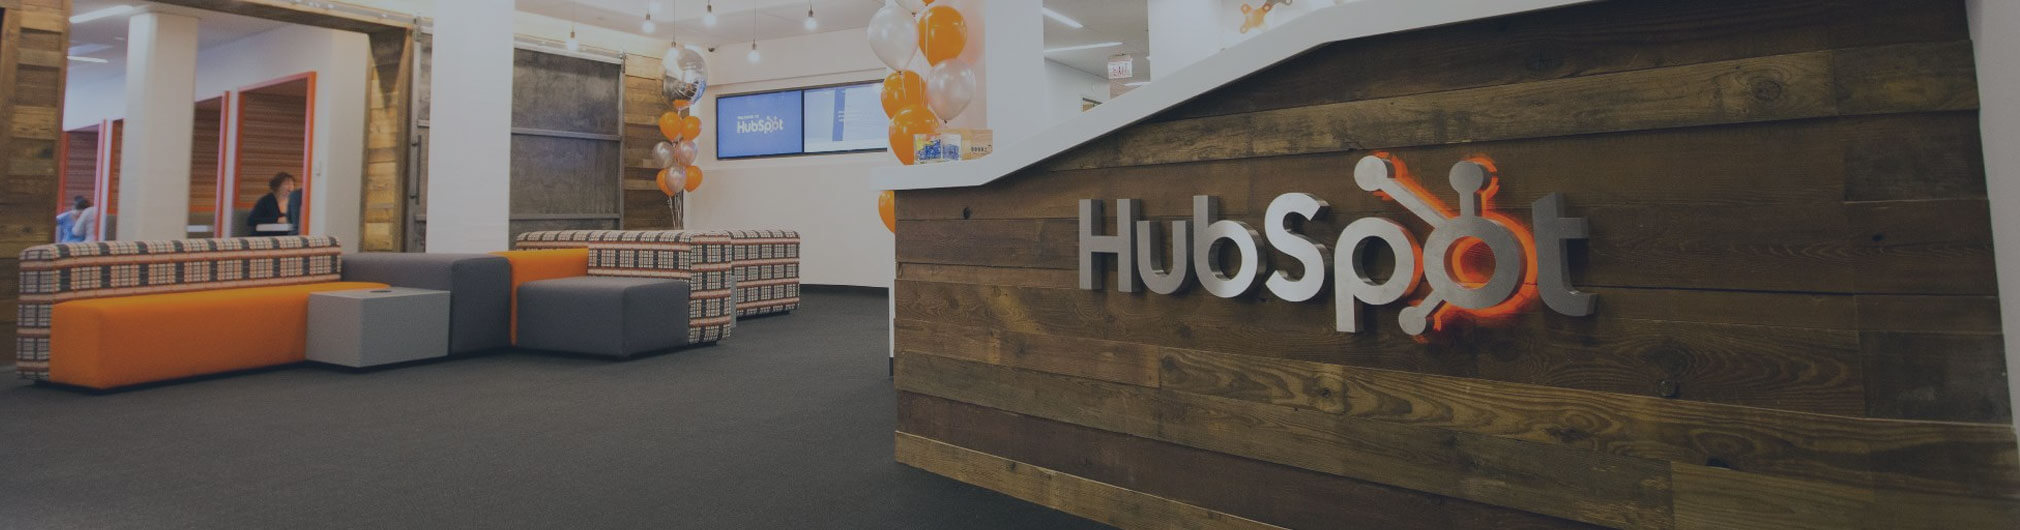 hubspot-office-hero-image-2